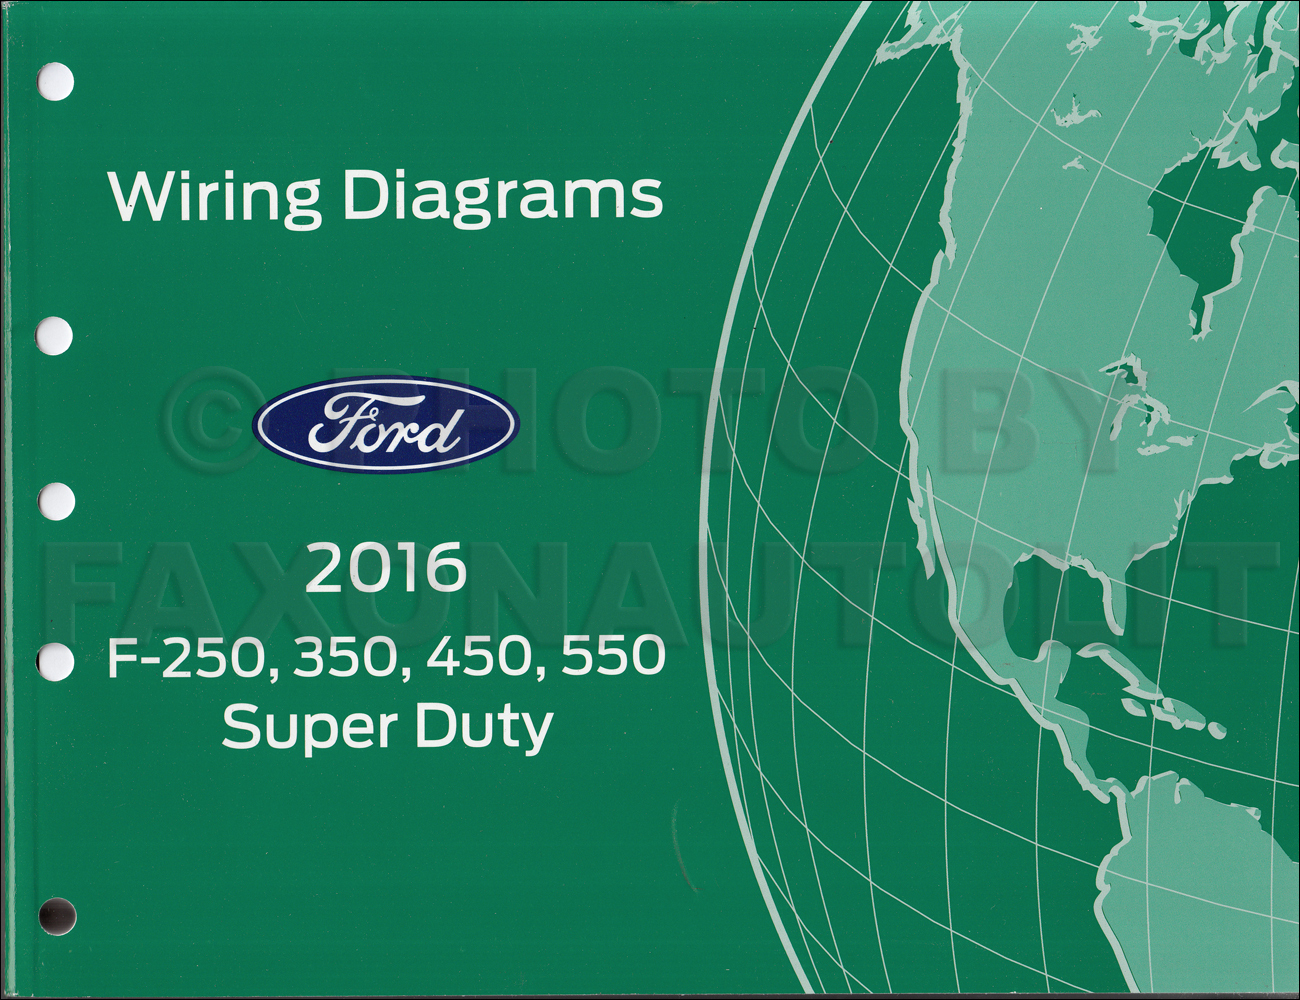 ford f550 wiring diagram wiring diagram schema 2016 ford f 150 trailer wiring diagram 2016 Ford F 150 Trailer Wiring Diagram